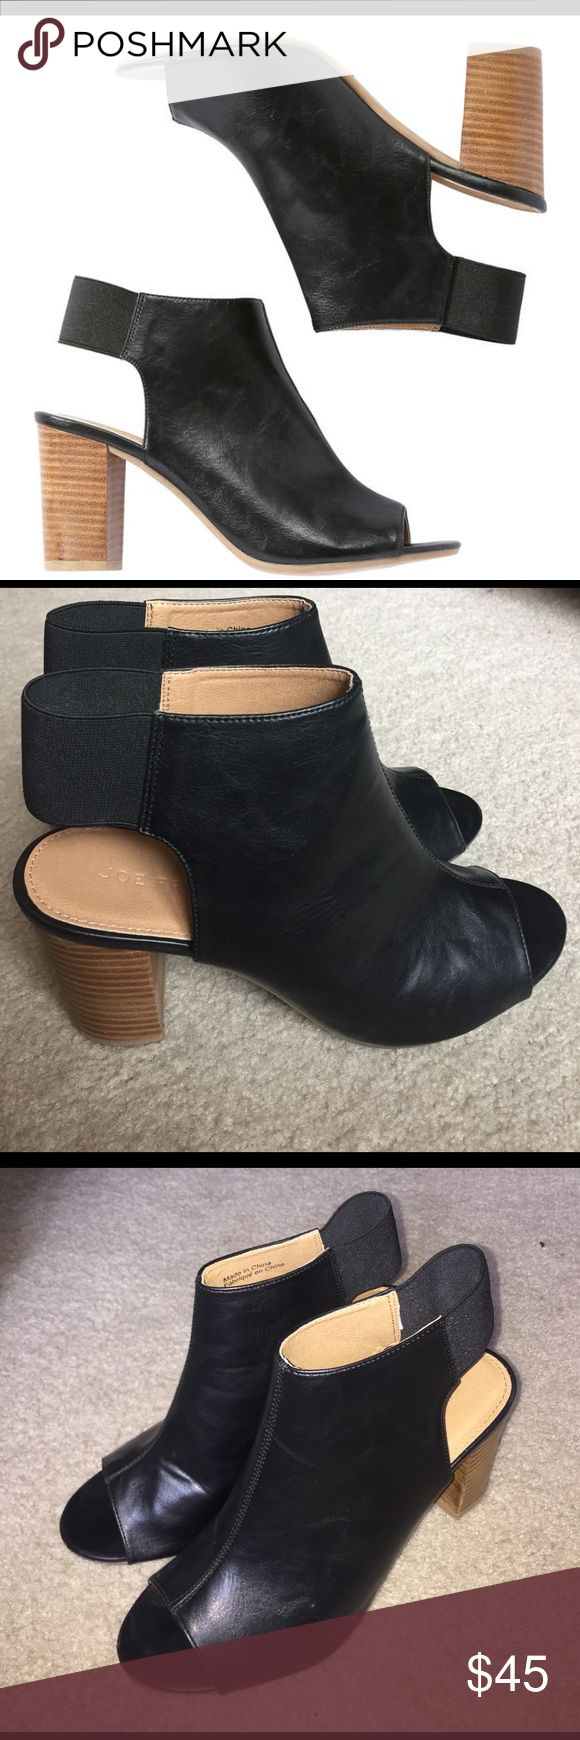 Joe fresh open toed black booties Joe fresh open toed black booties, barely worn Joe Fresh Shoes Ankle Boots & Booties